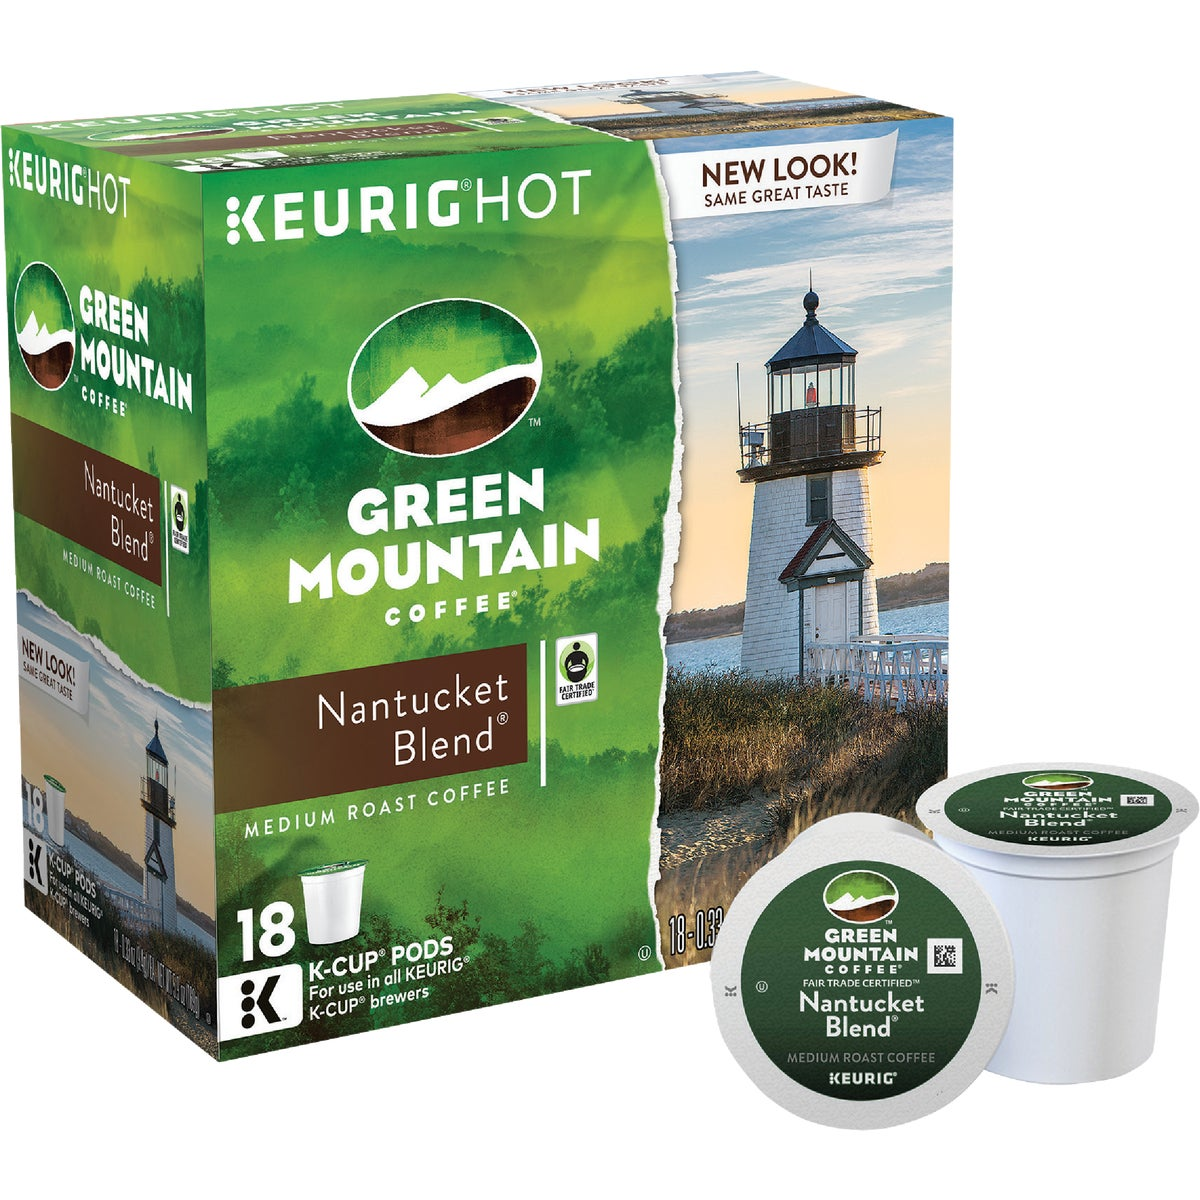 K-CUP NANTUCKET COFFEE - 00663 by Keurig     M Block